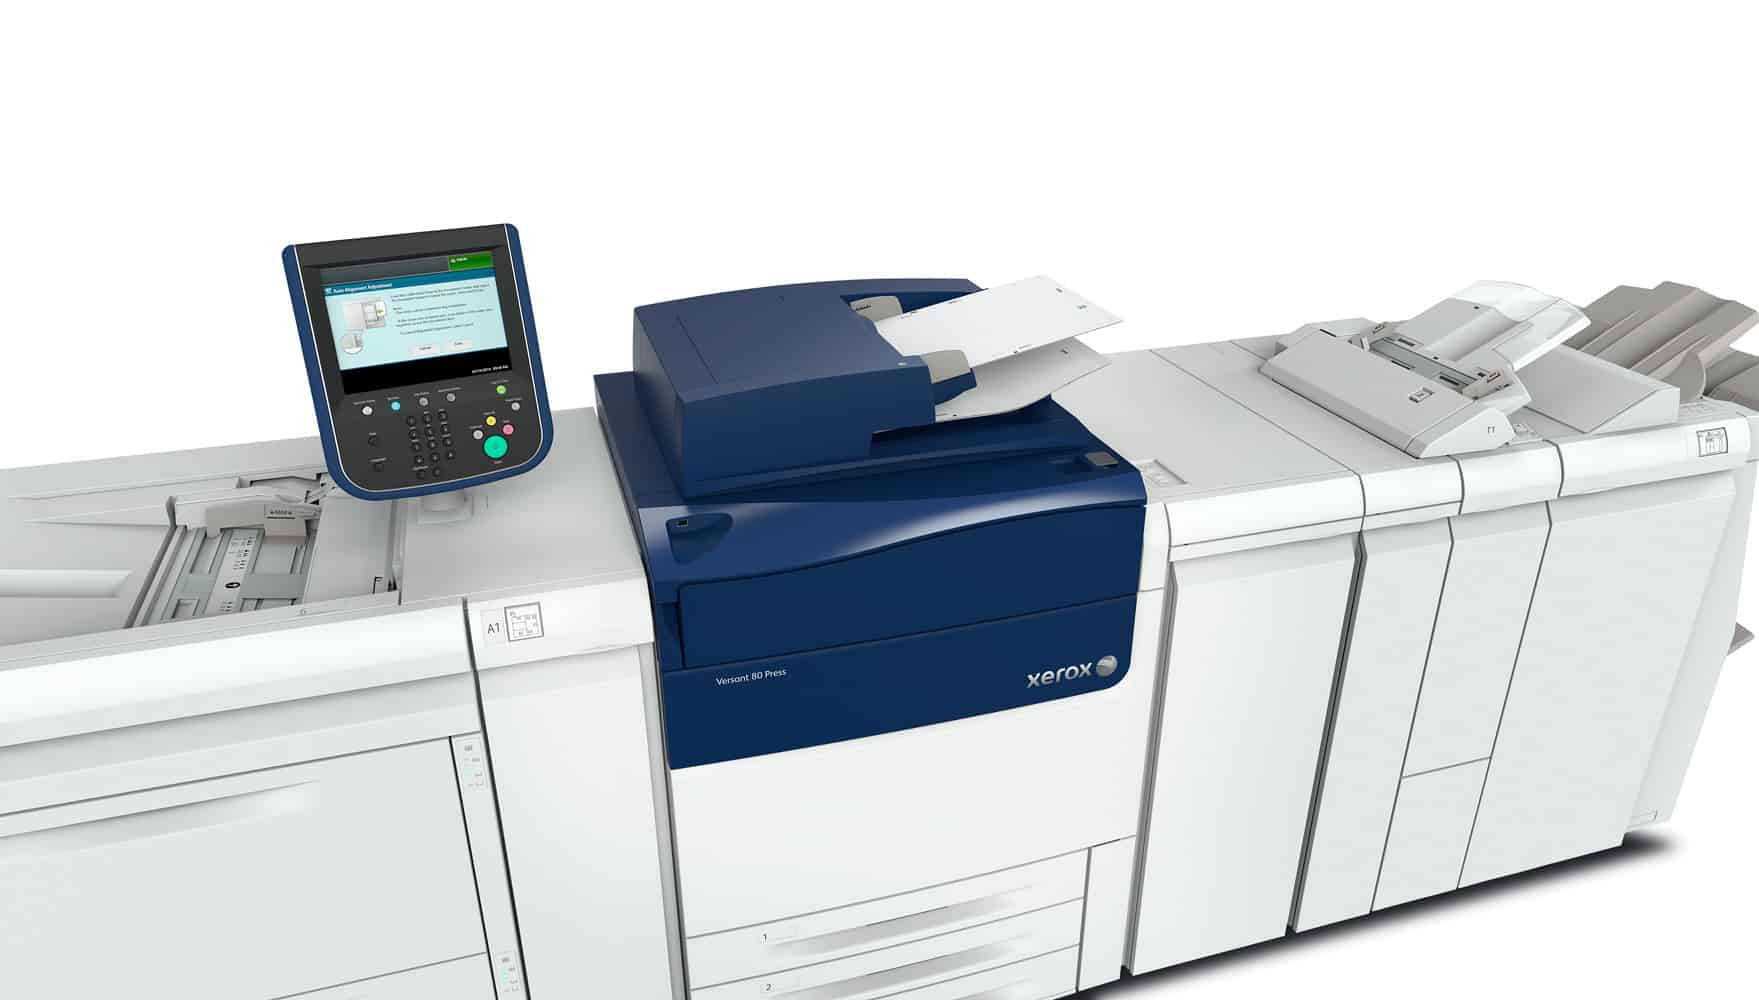 versant 80 press xerox